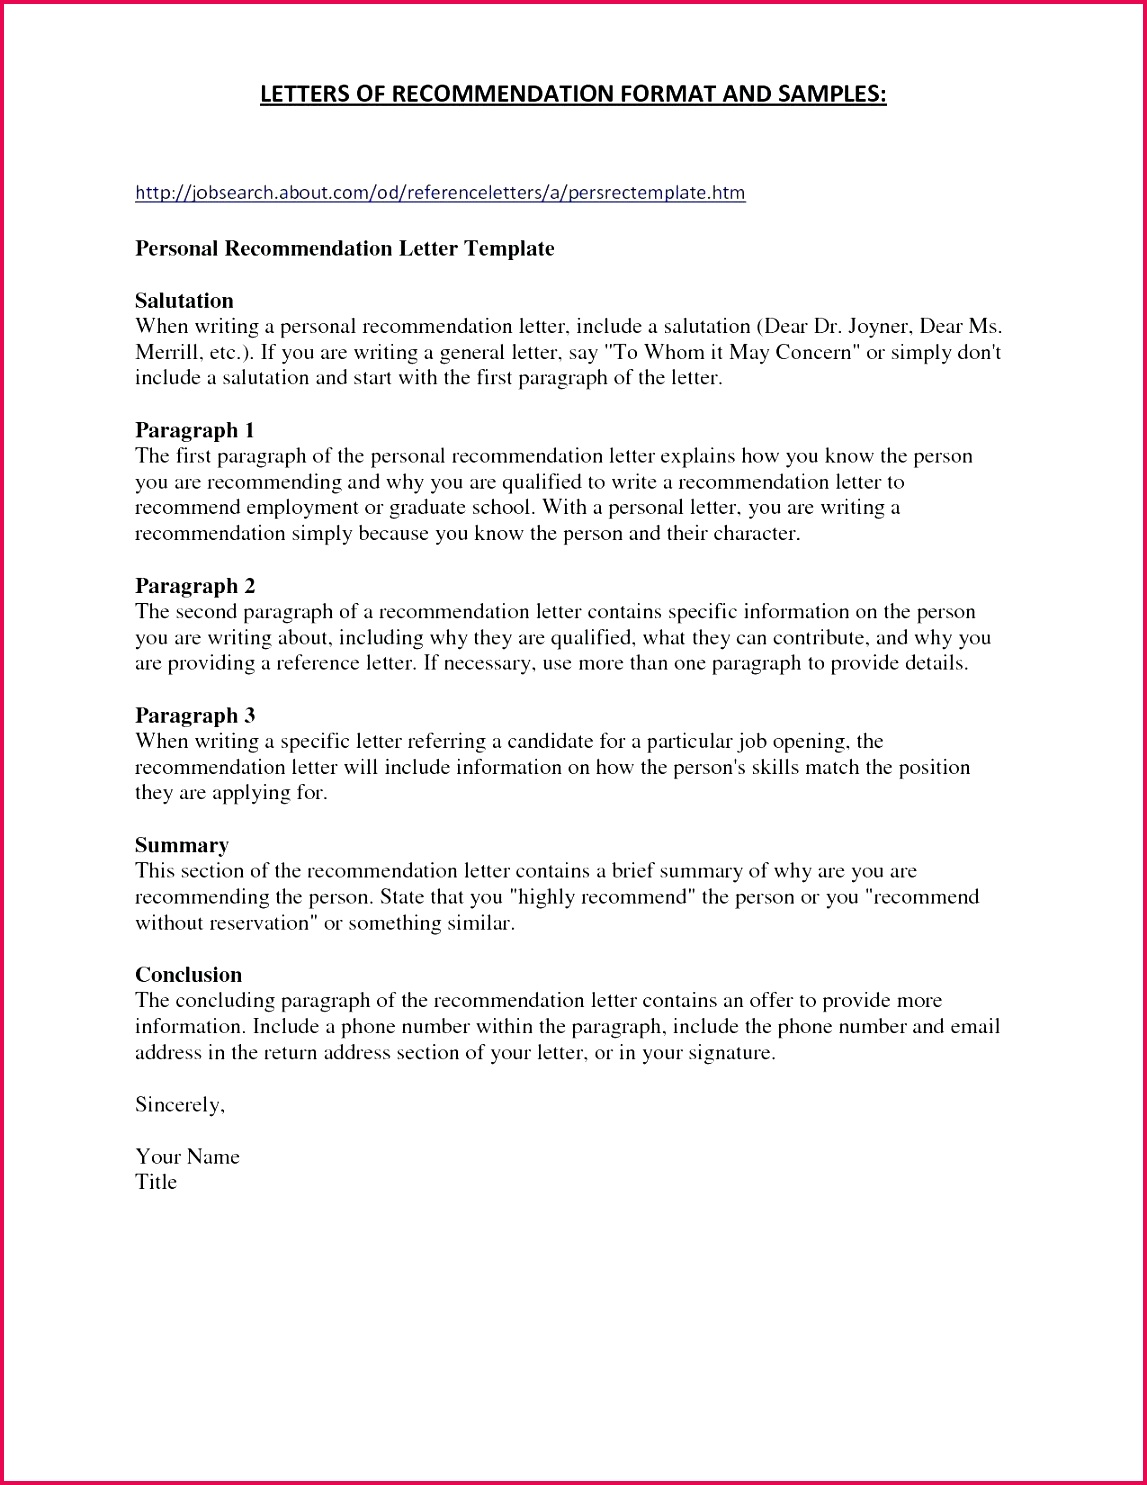 learning to write templates certificate of pletion template free word fascinating high school resume template word example free templates for learn to write templates for preschoolers